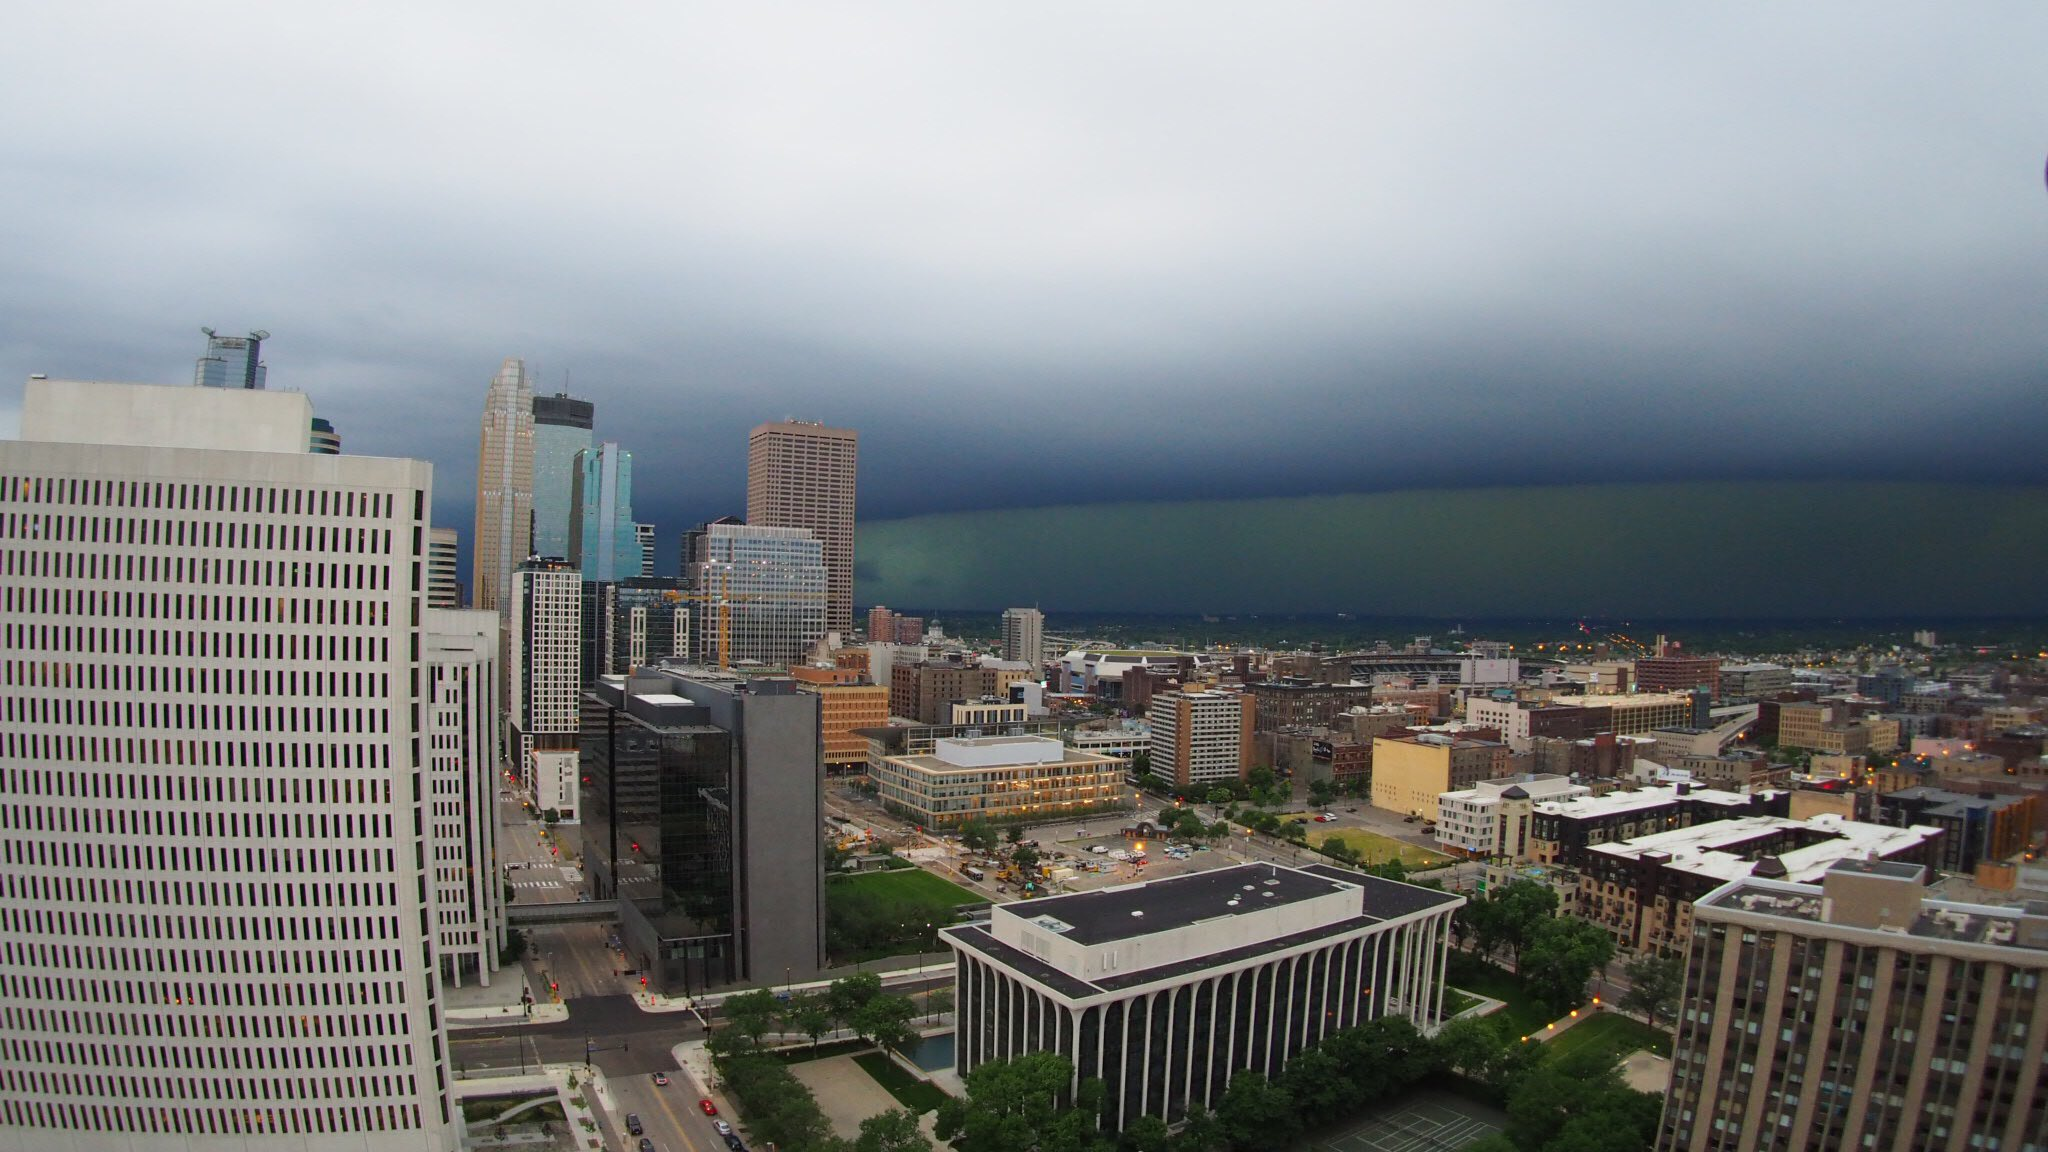 Thumbnail for Wild Sunday morning storm turns sky green, brings hail through Twin Cities